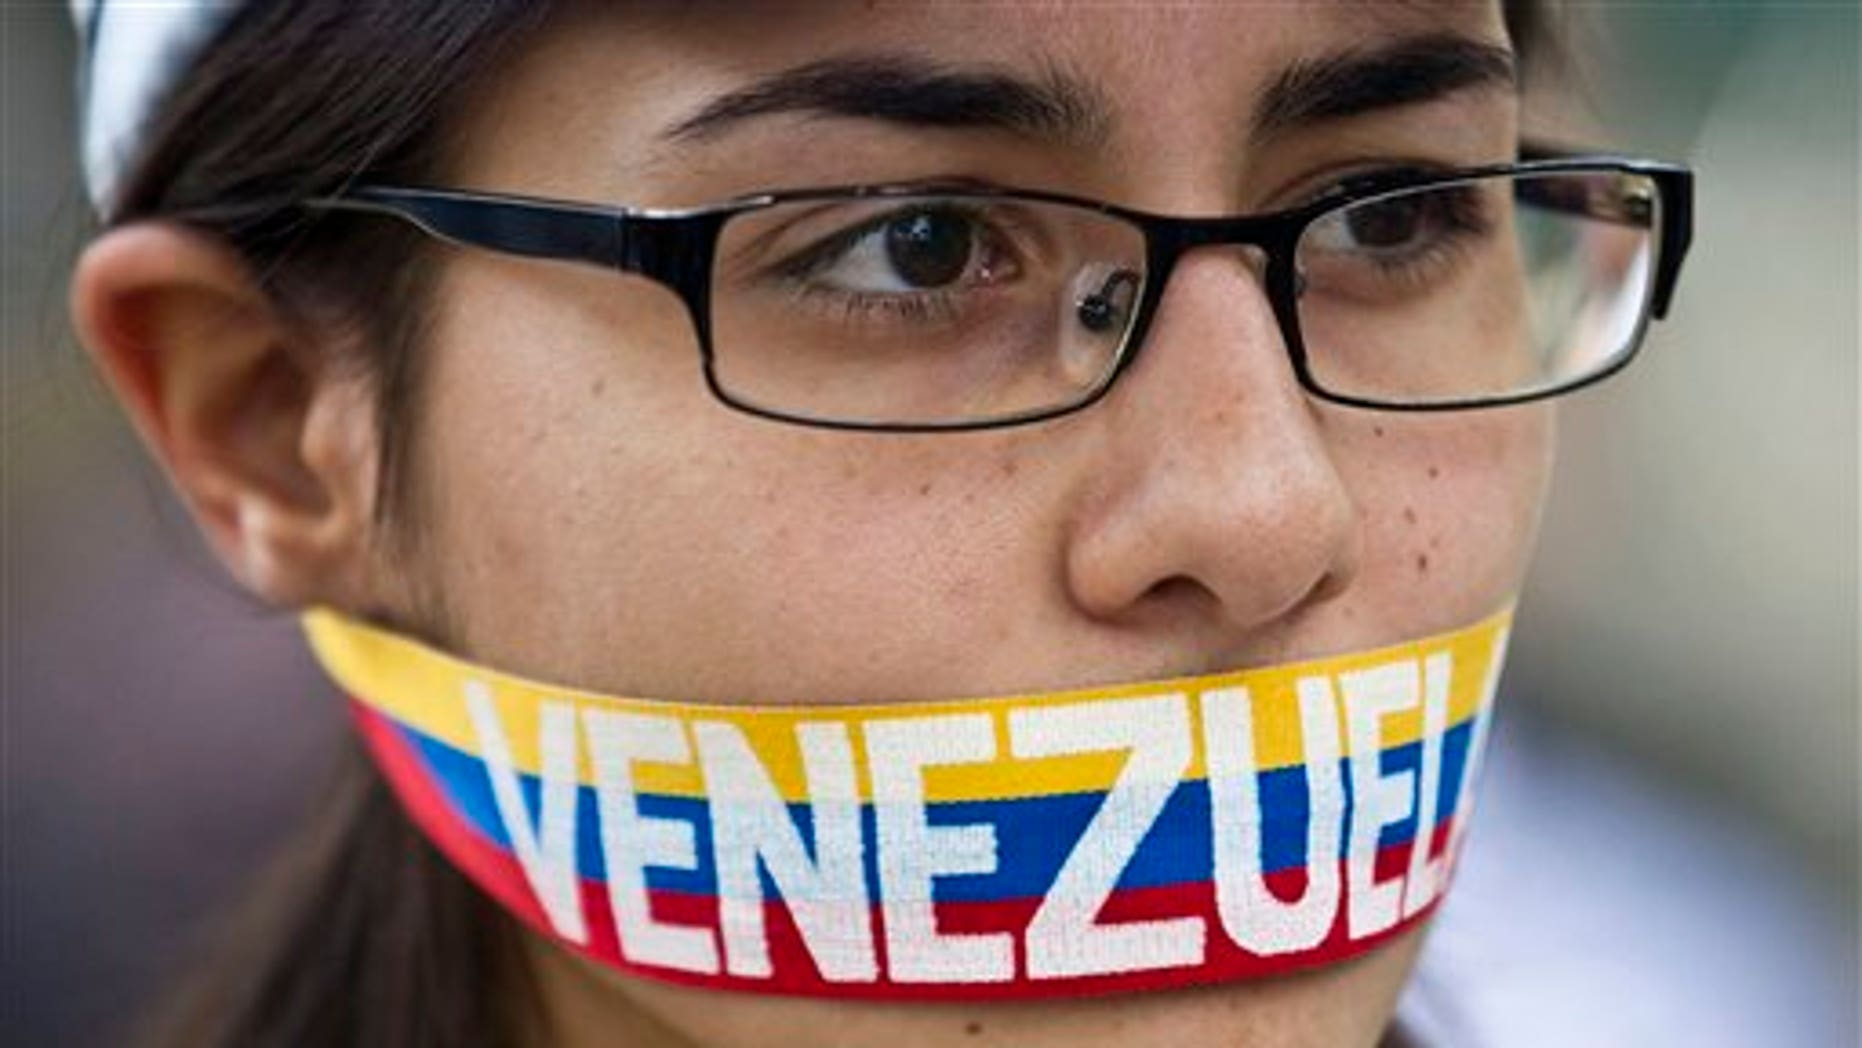 """An anti-government demonstrator stands with a tri-colored ribbon covering her mouth that reads """"Venezuela"""" during a protest in front of an office of the Organization of American States, OAS, in Caracas, Venezuela, Friday, March 21, 2014. Opposition lawmaker Maria Corina Machado is scheduled to speak before the OAS council in a closed-door session Friday in Washington D.C., presenting the situation in her country (AP Photo/Esteban Felix)"""